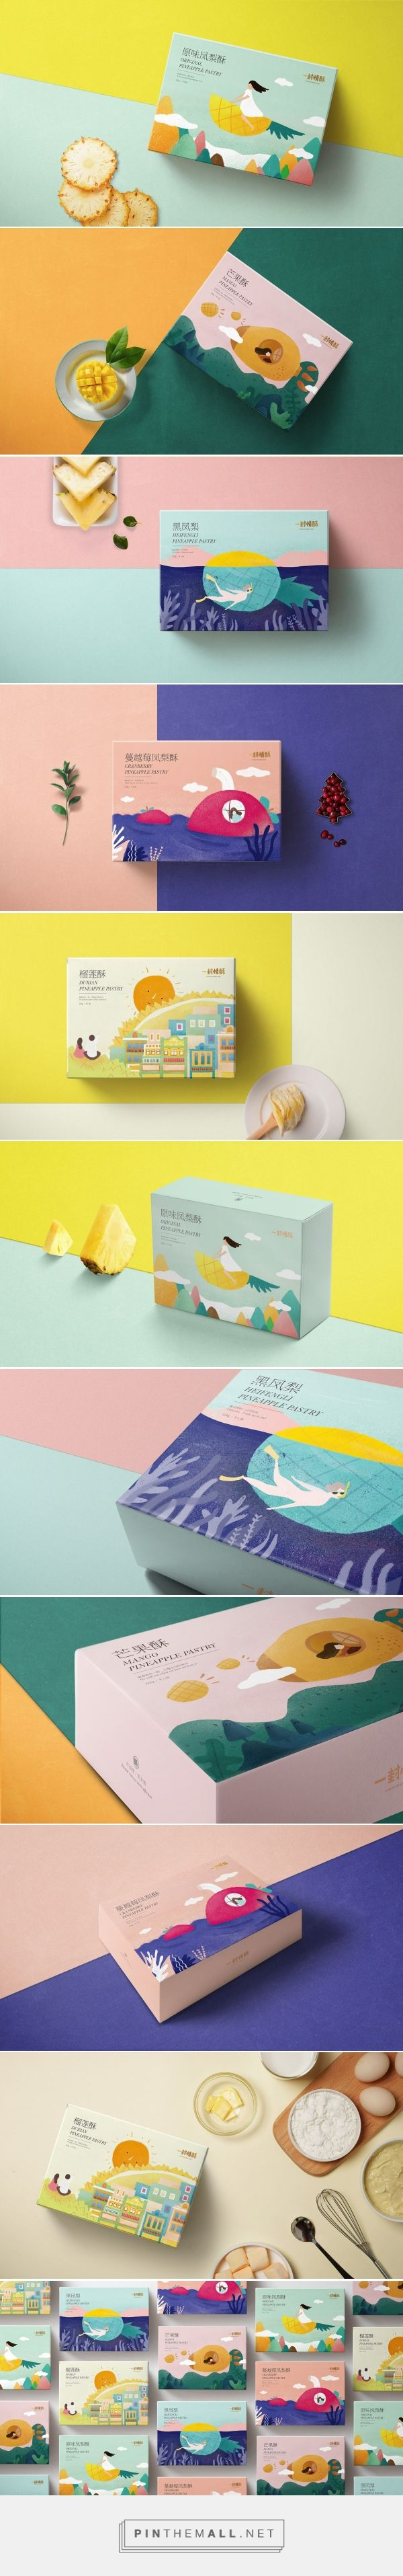 A Piece Of Lovely Cake packaging design by Step Design - http://www.packagingoftheworld.com/2018/01/a-piece-of-lovely-cake.html